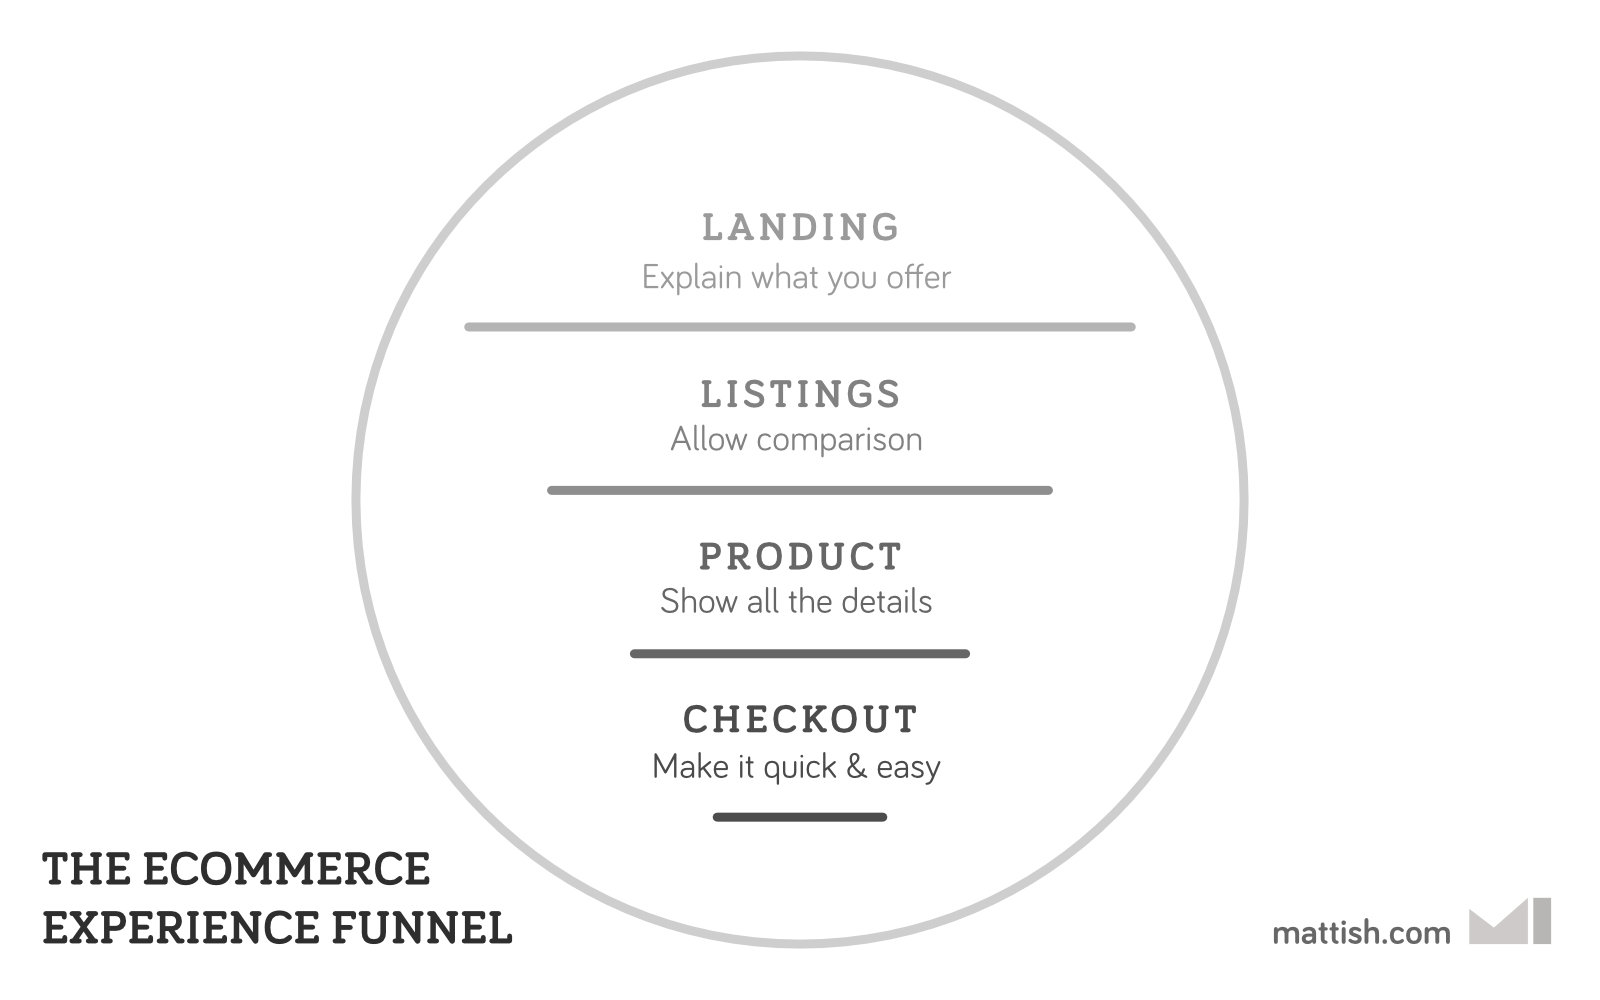 Ecommerce experience funnel